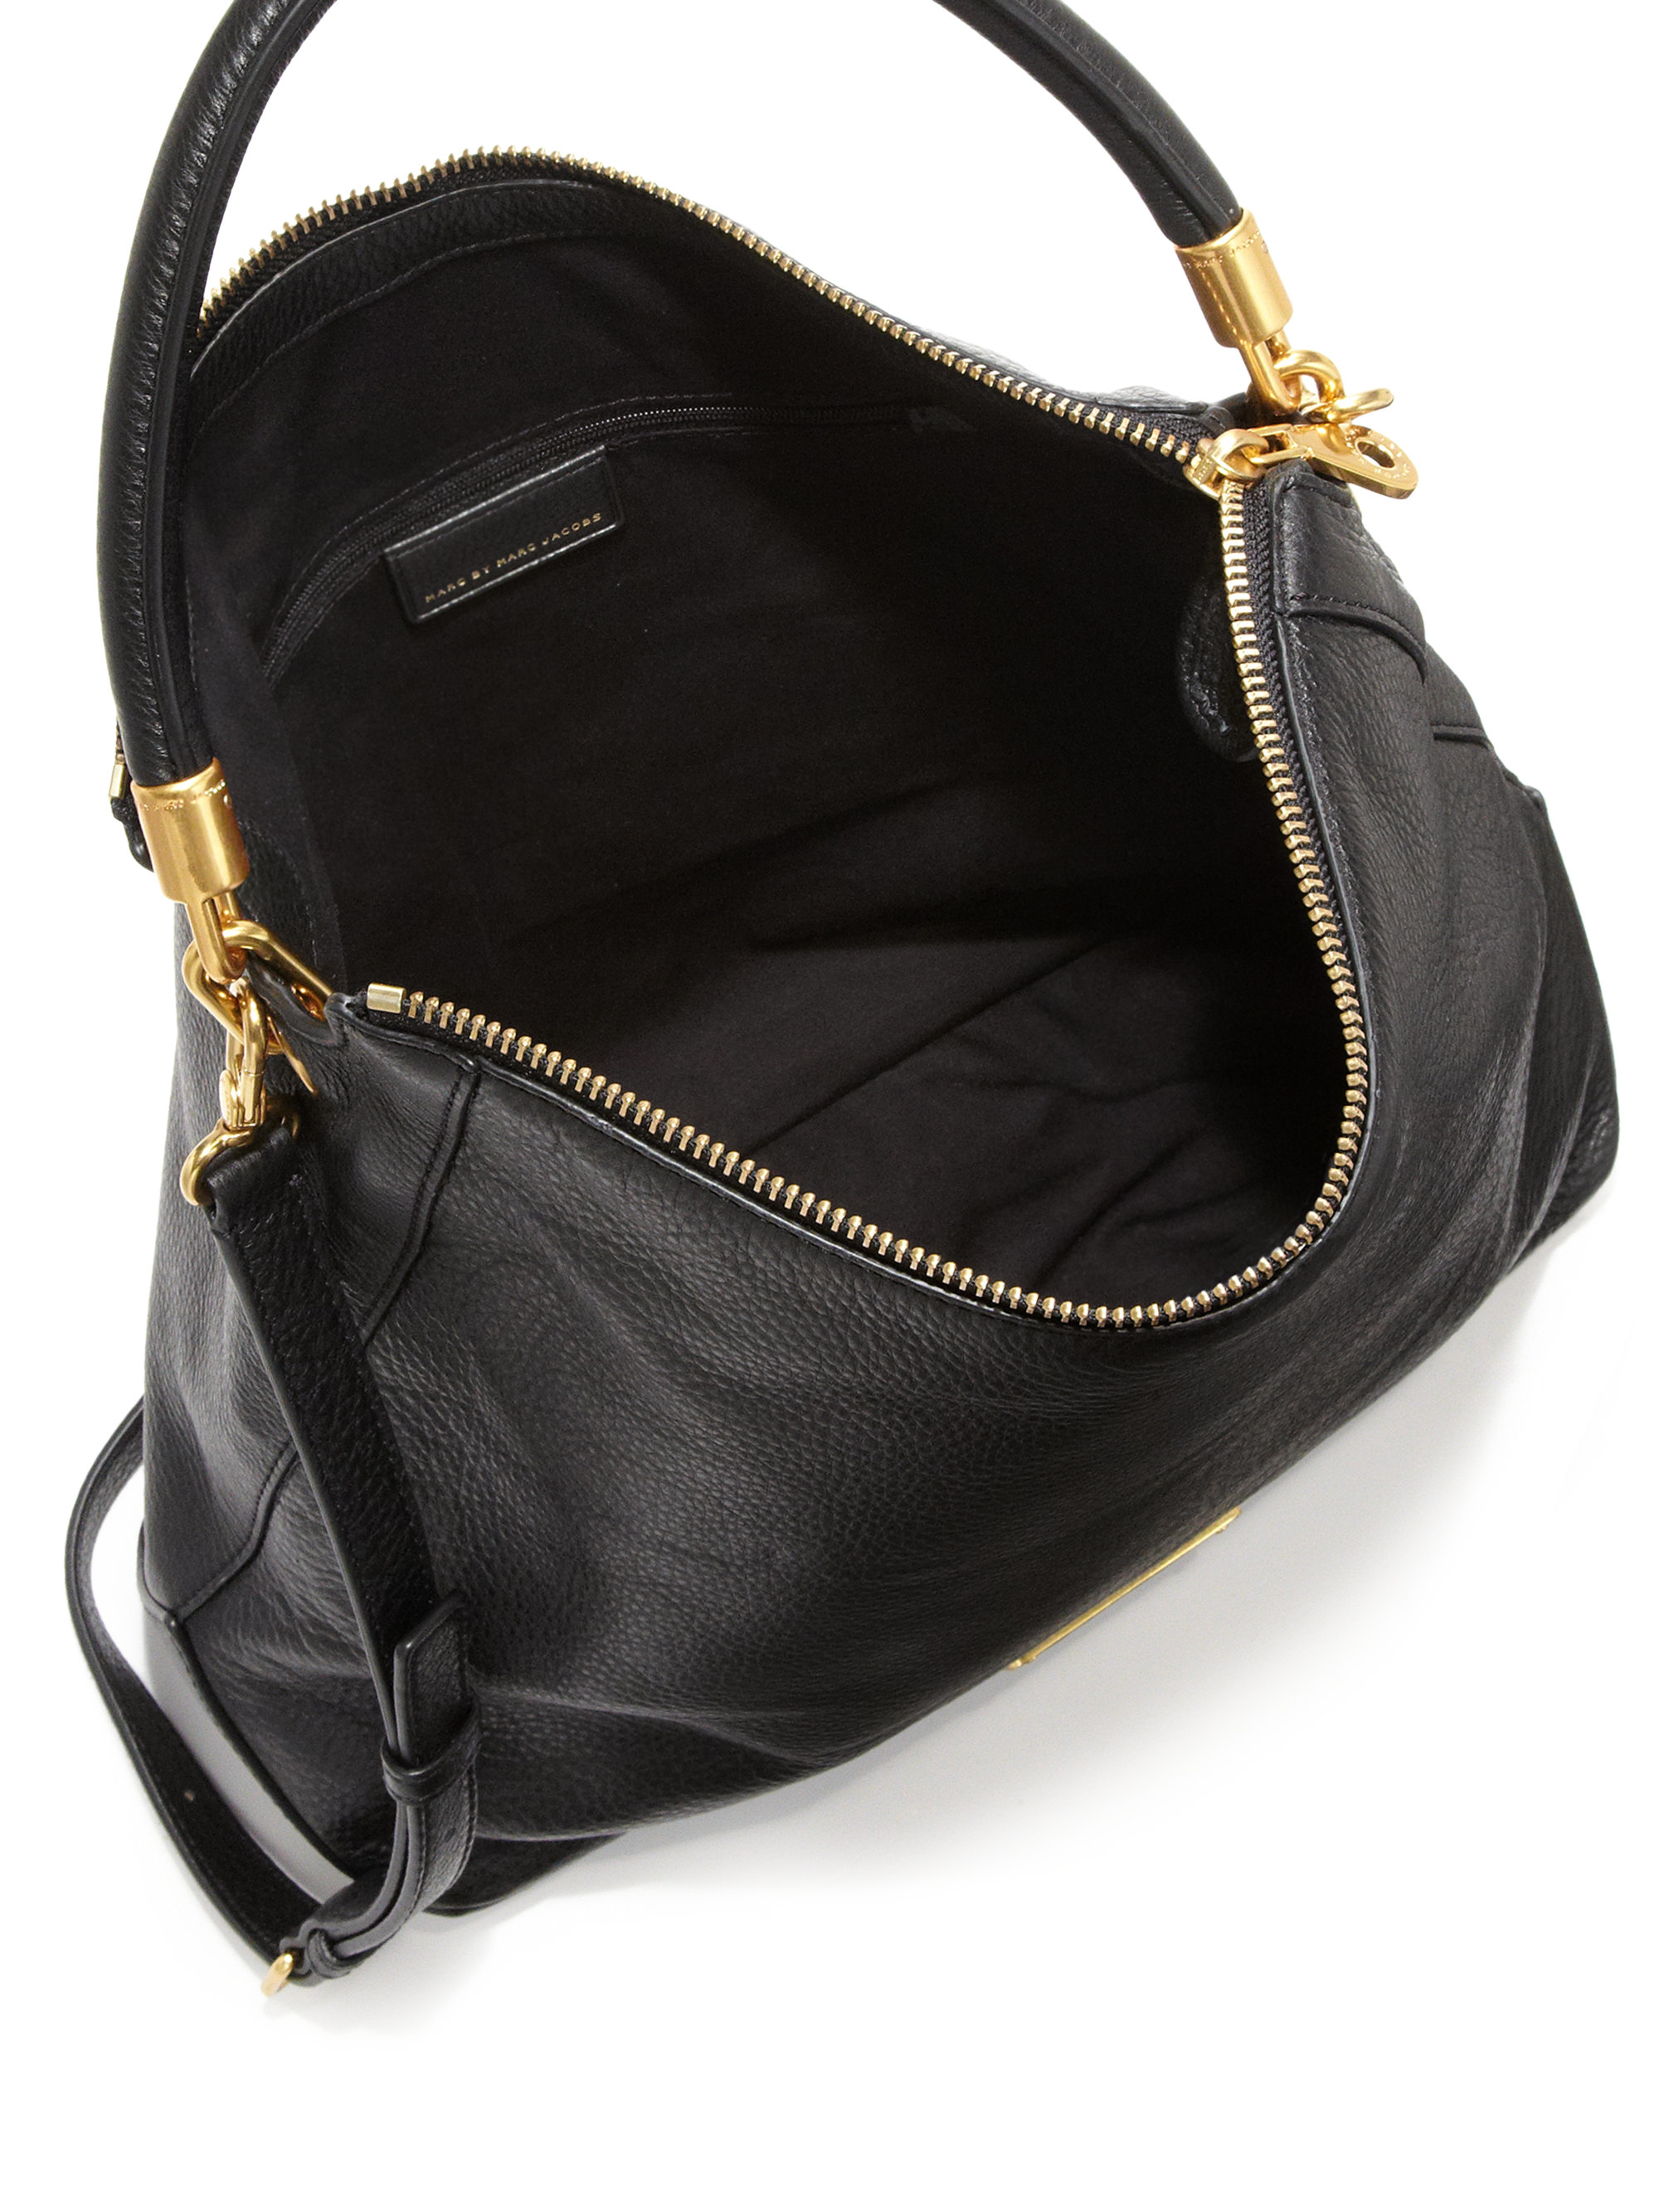 Marc by marc jacobs Too Hot To Handle Leather Hobo Bag in Black | Lyst